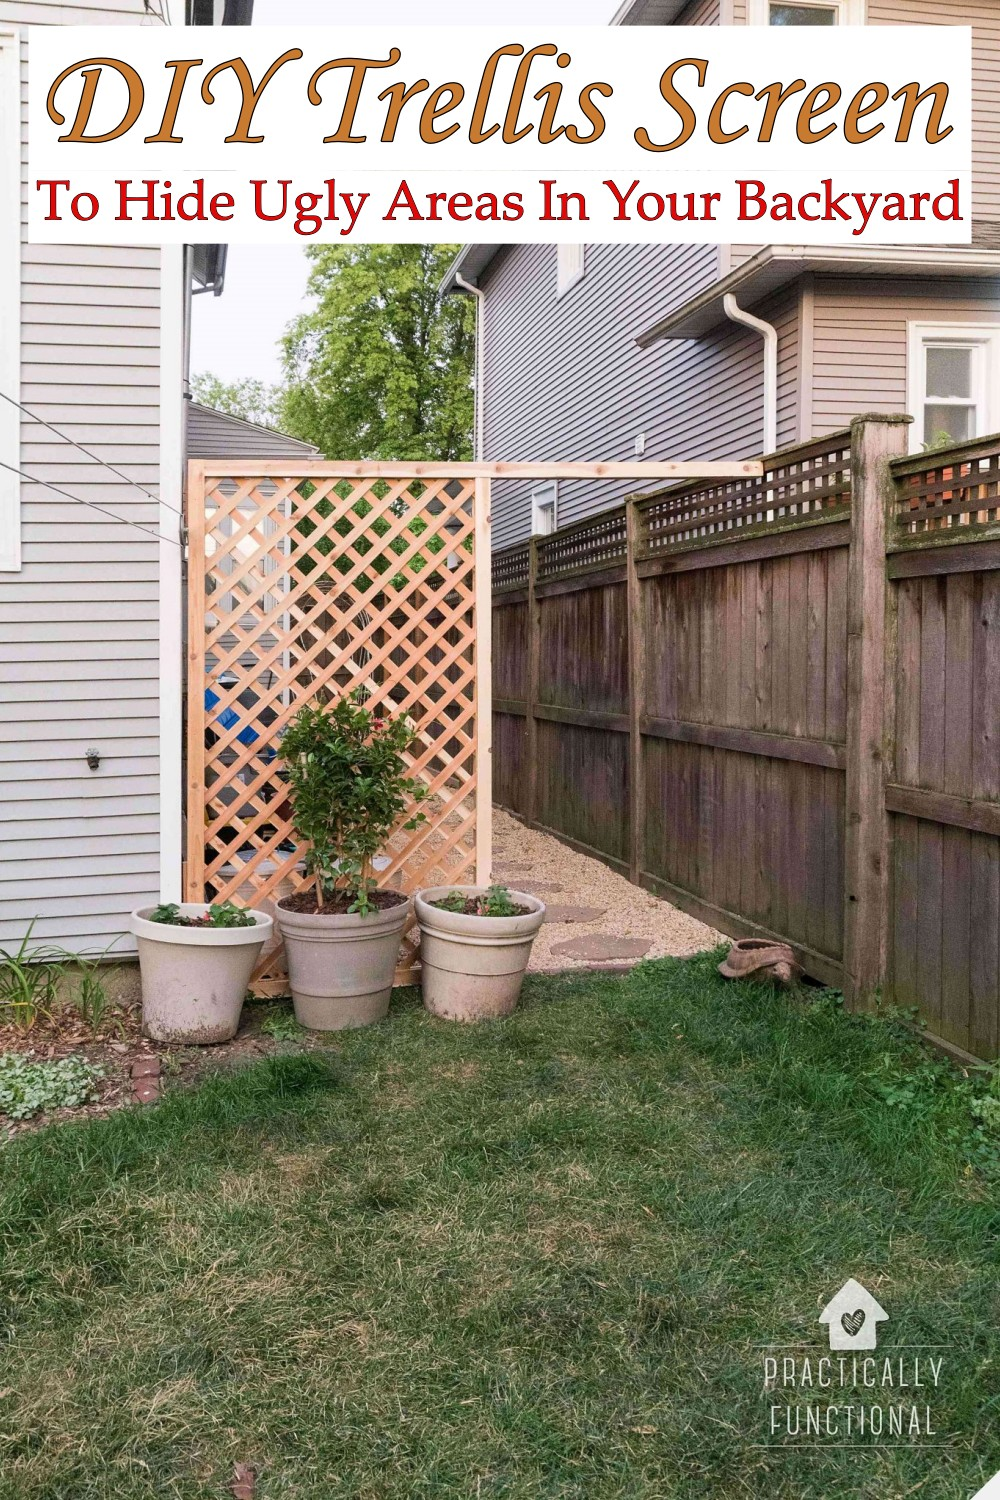 DIY Trellis Screen To Hide Ugly Areas In Your Backyard